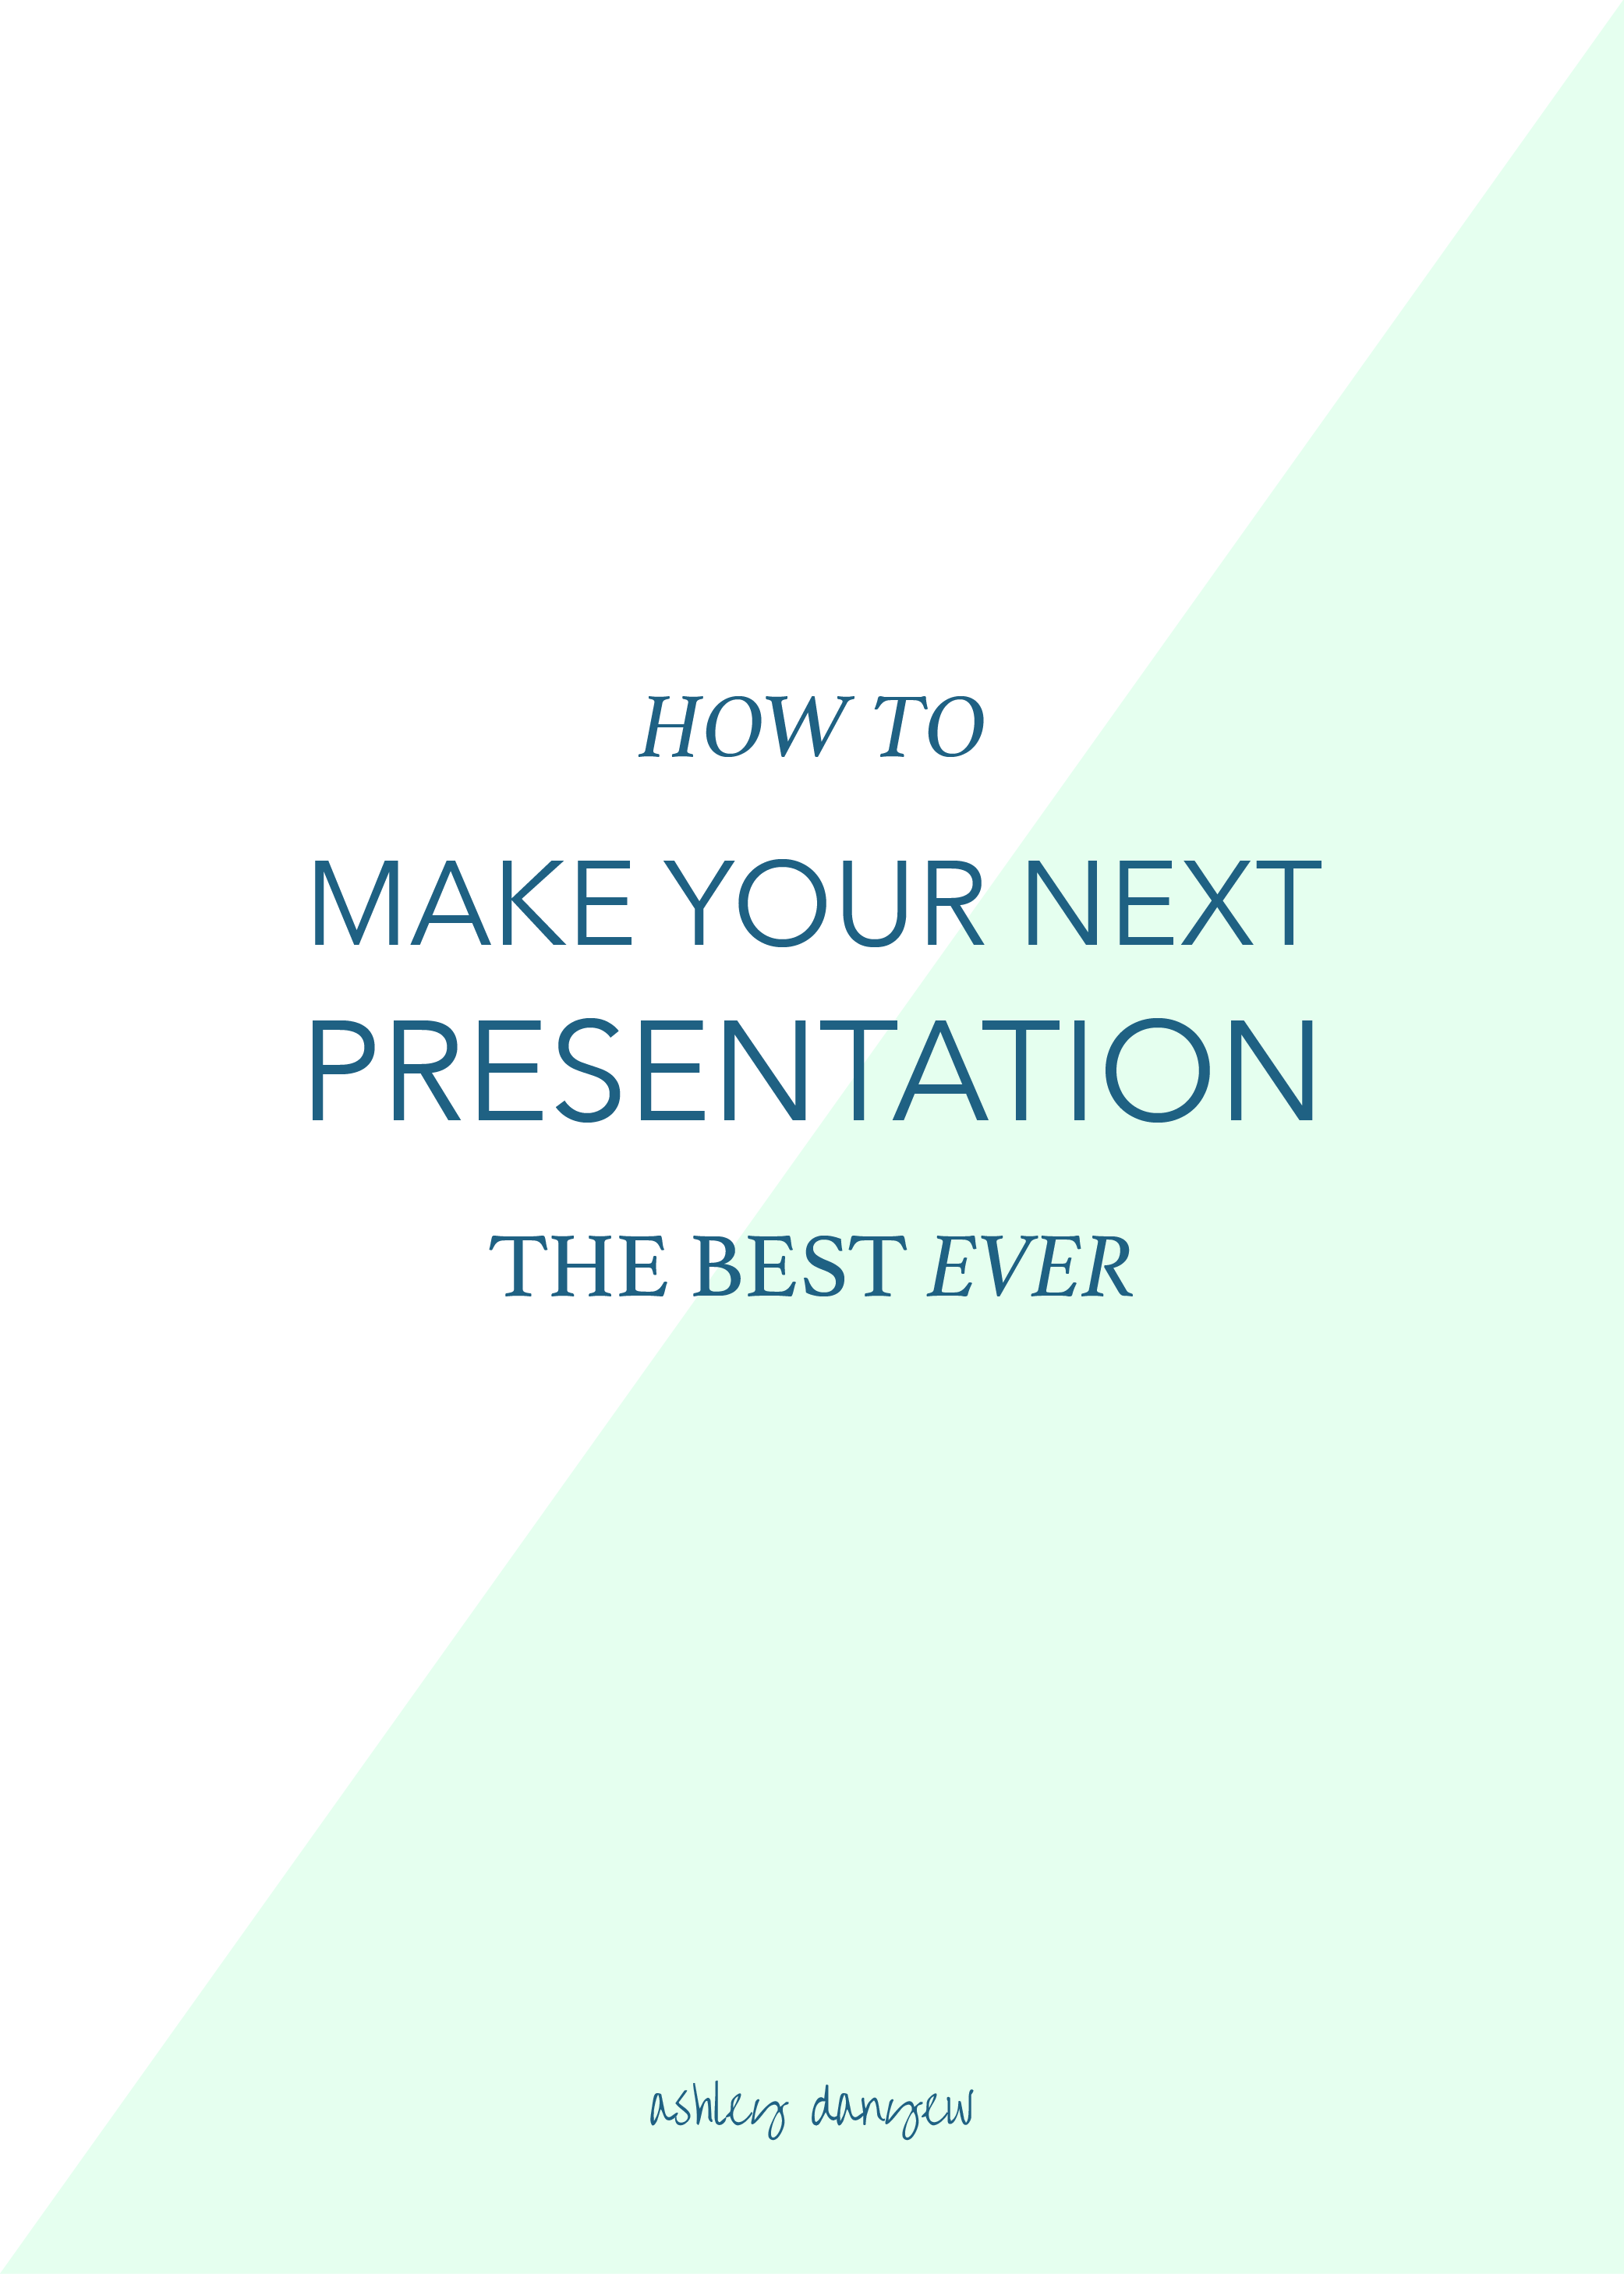 Copy of How to Make Your Next Presentation the Best Ever